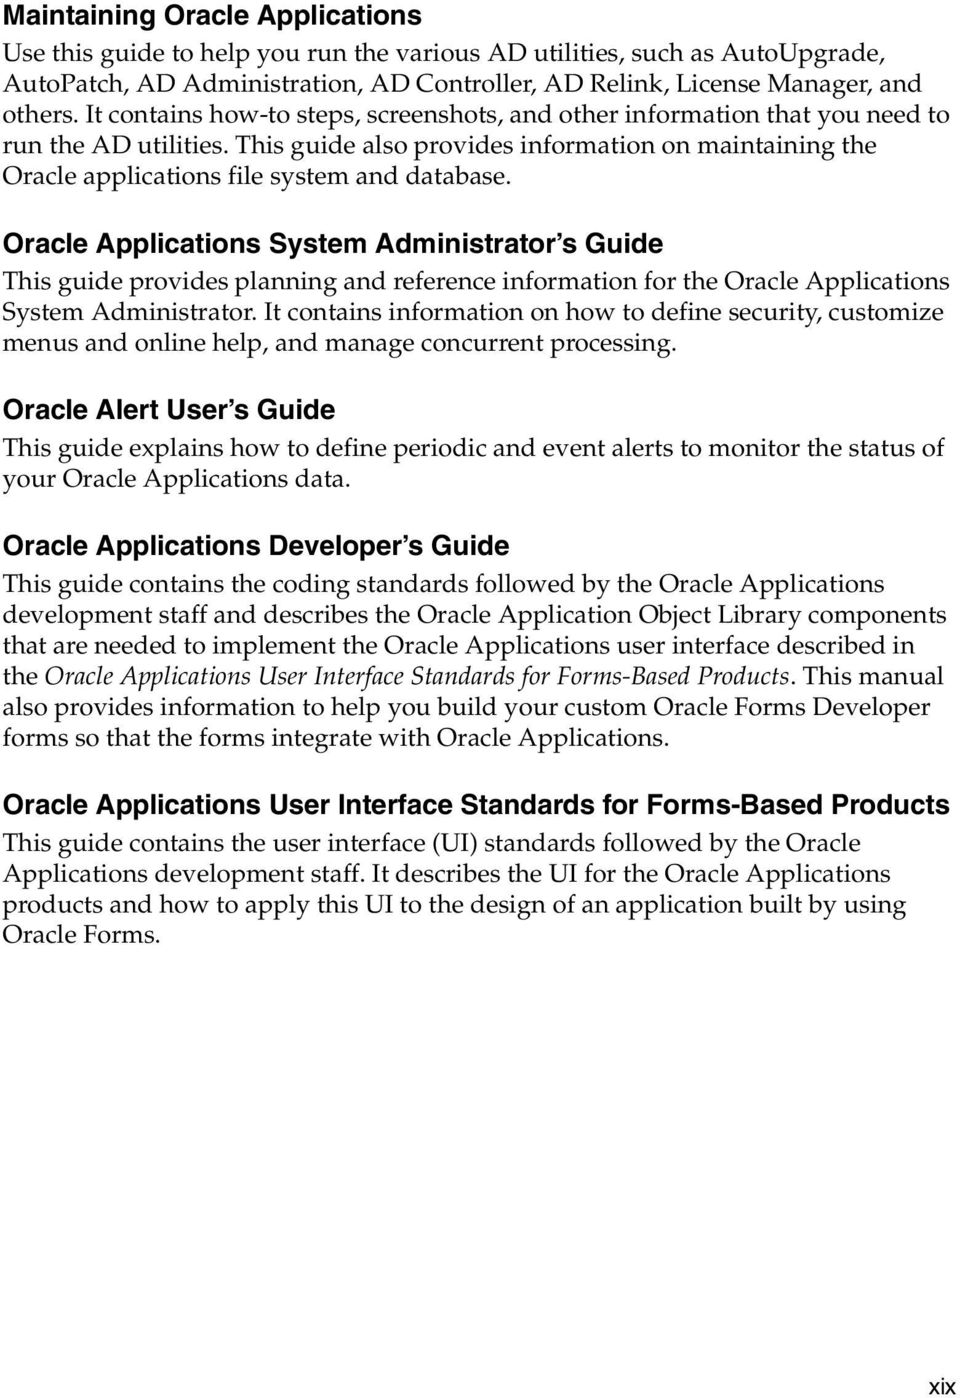 This guide also provides information on maintaining the Oracle applications file system and database.